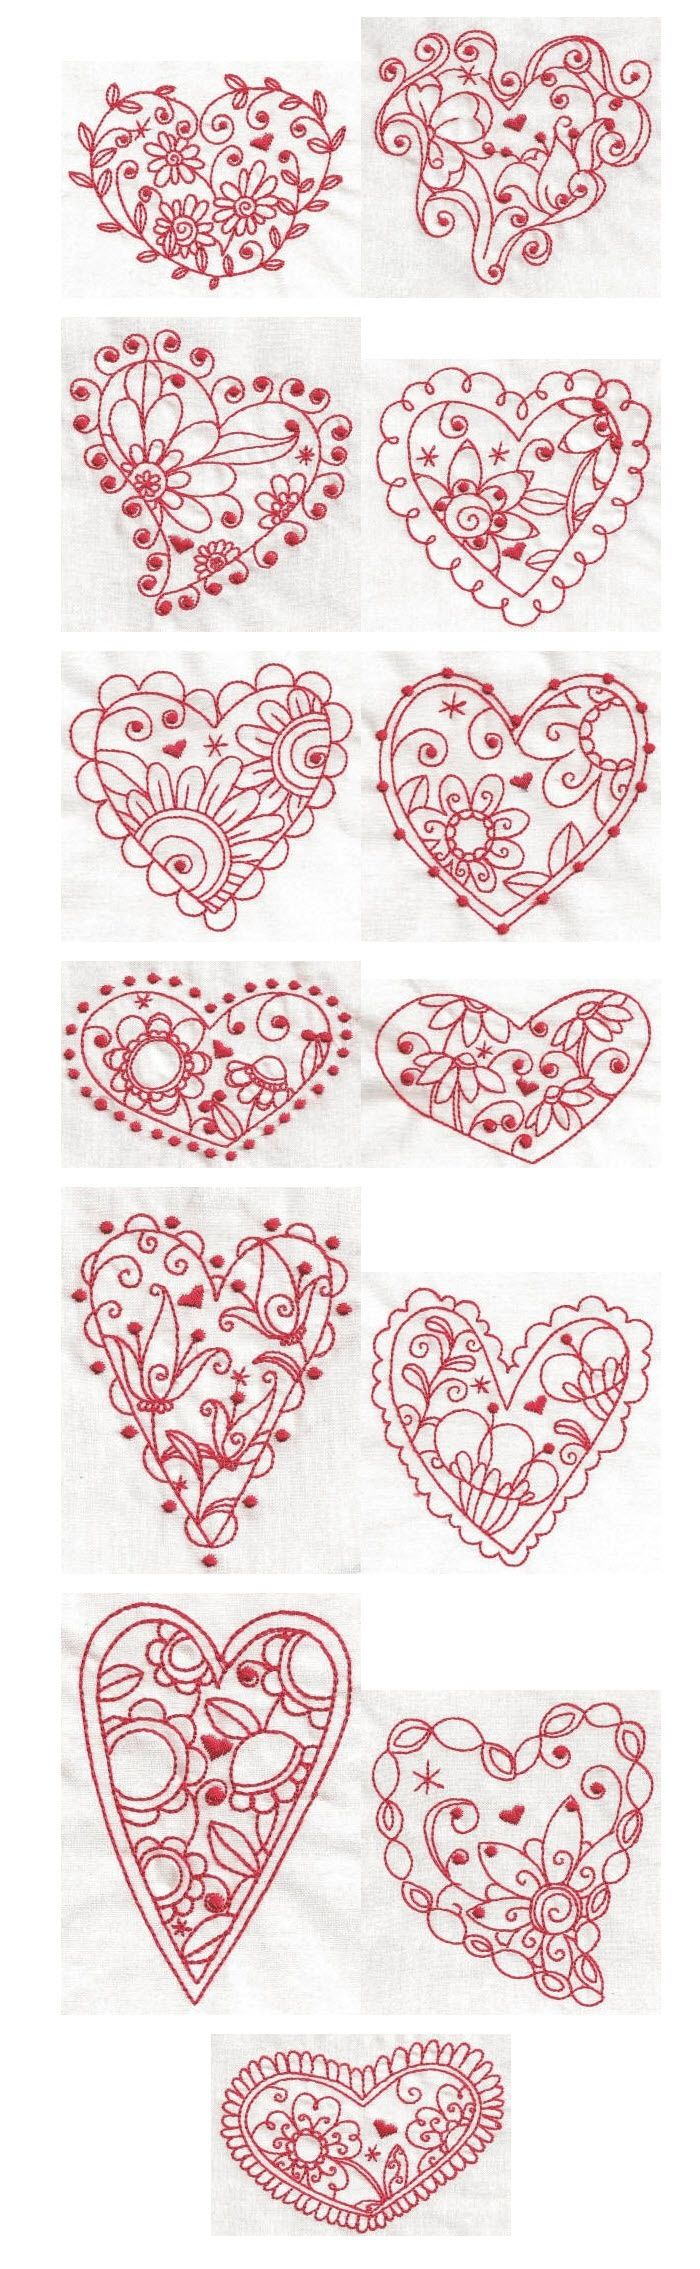 Redwork hearts - Our Valentine homemaking day!